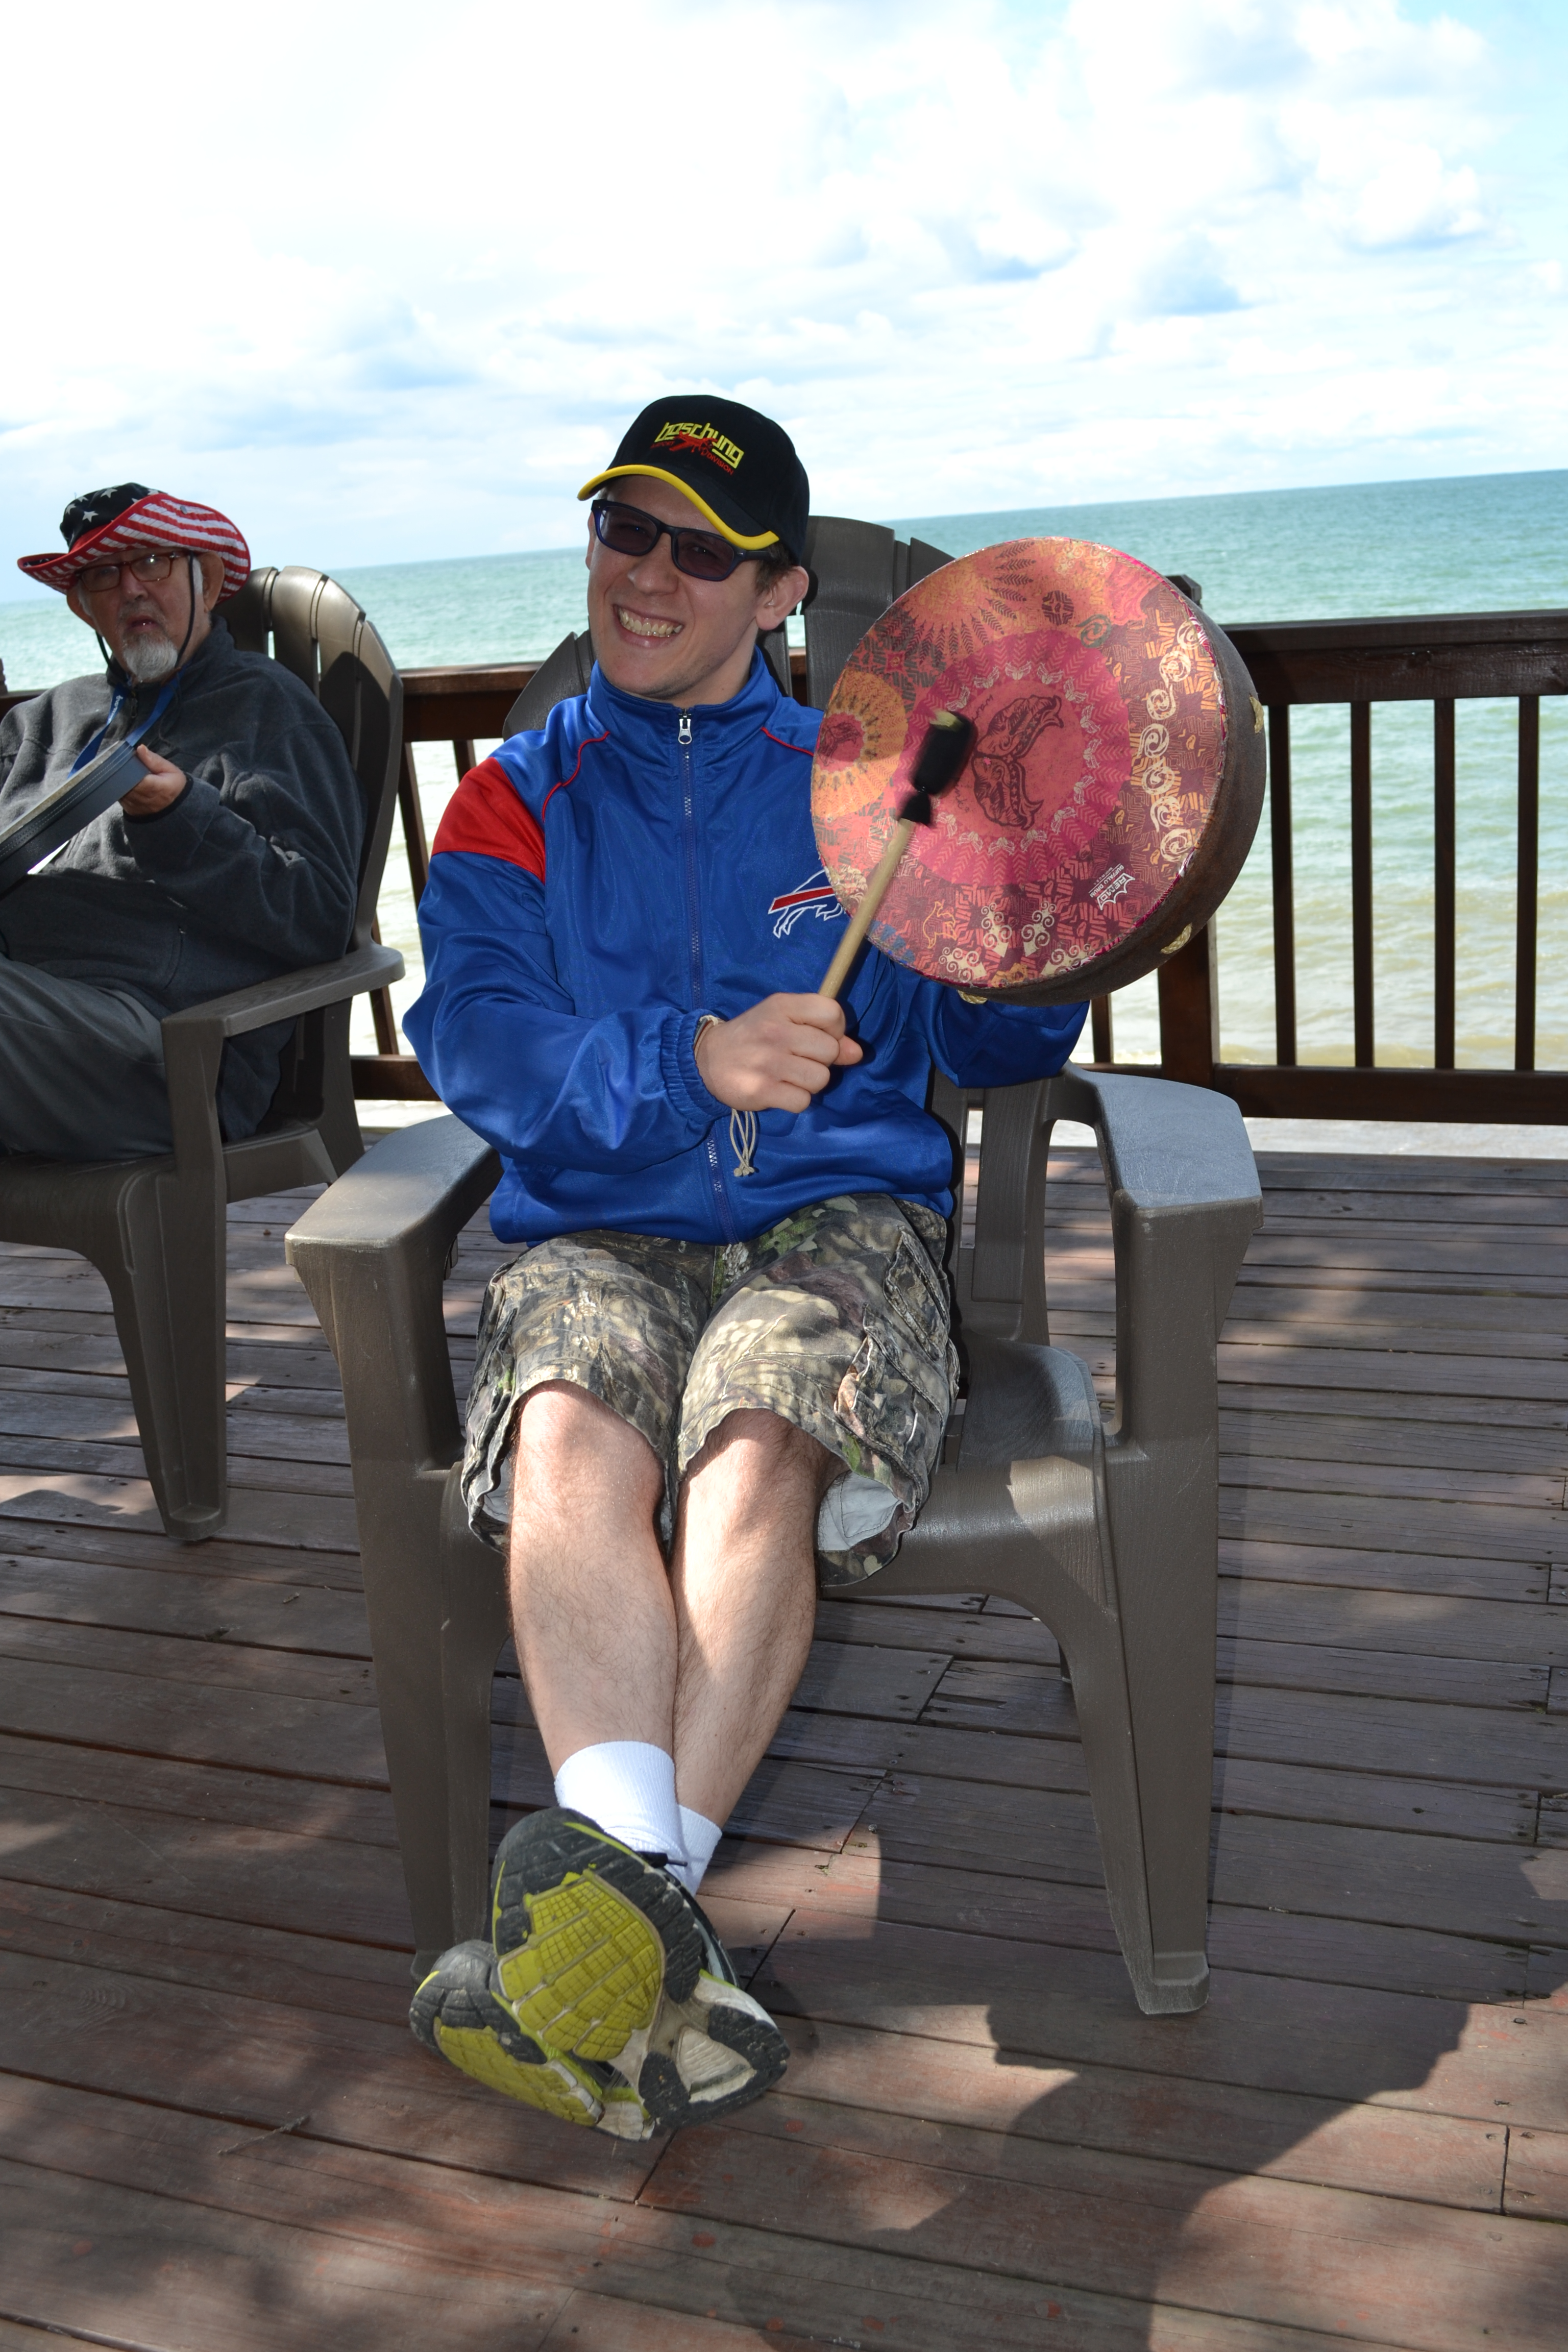 Vacationer participating in a Drum Circle